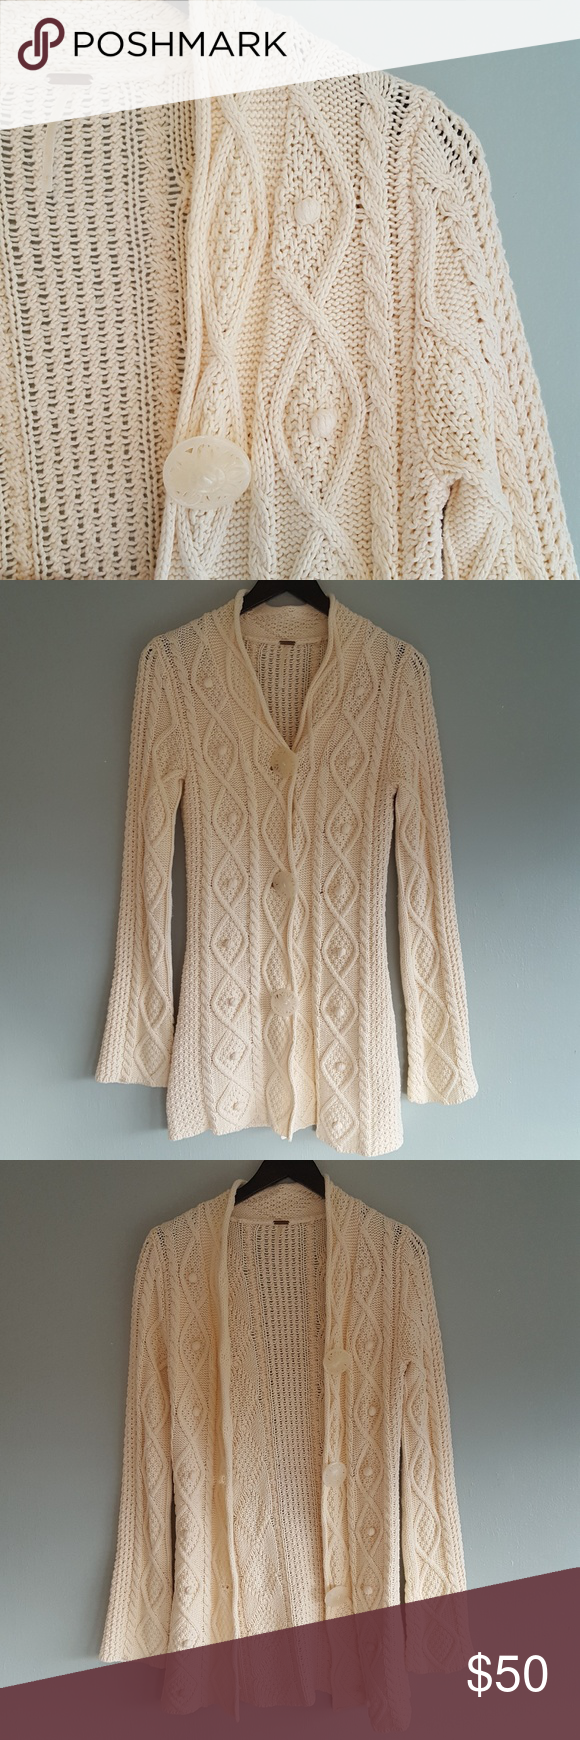 Free People Chunky Cable Knit Long Cardigan Gently used